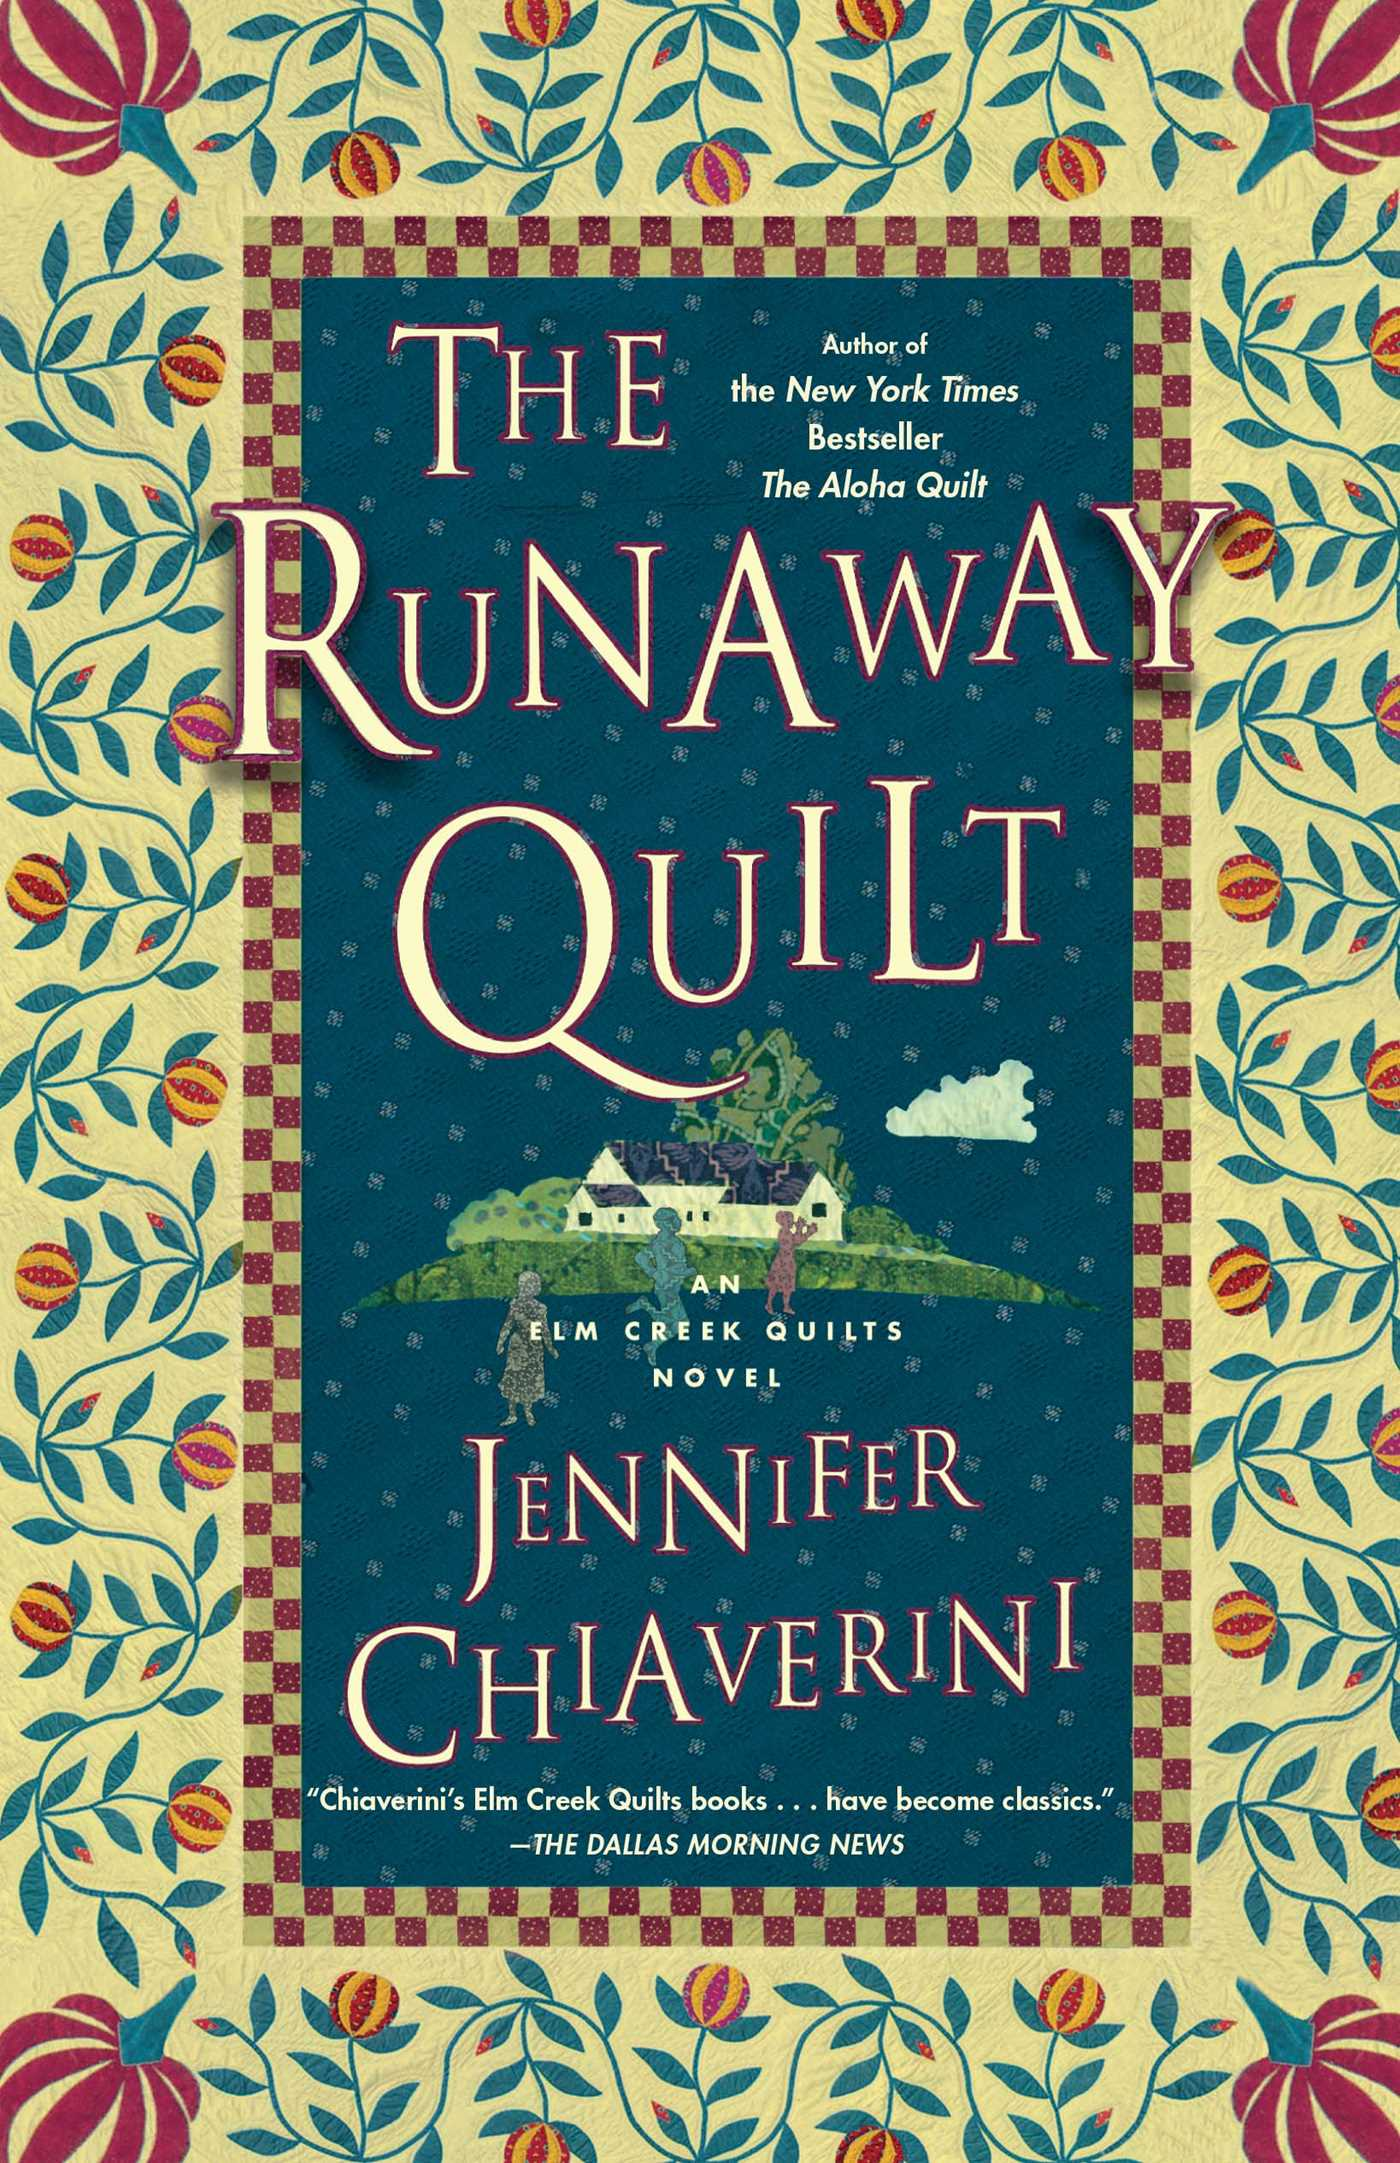 The-runaway-quilt-9781451606096_hr